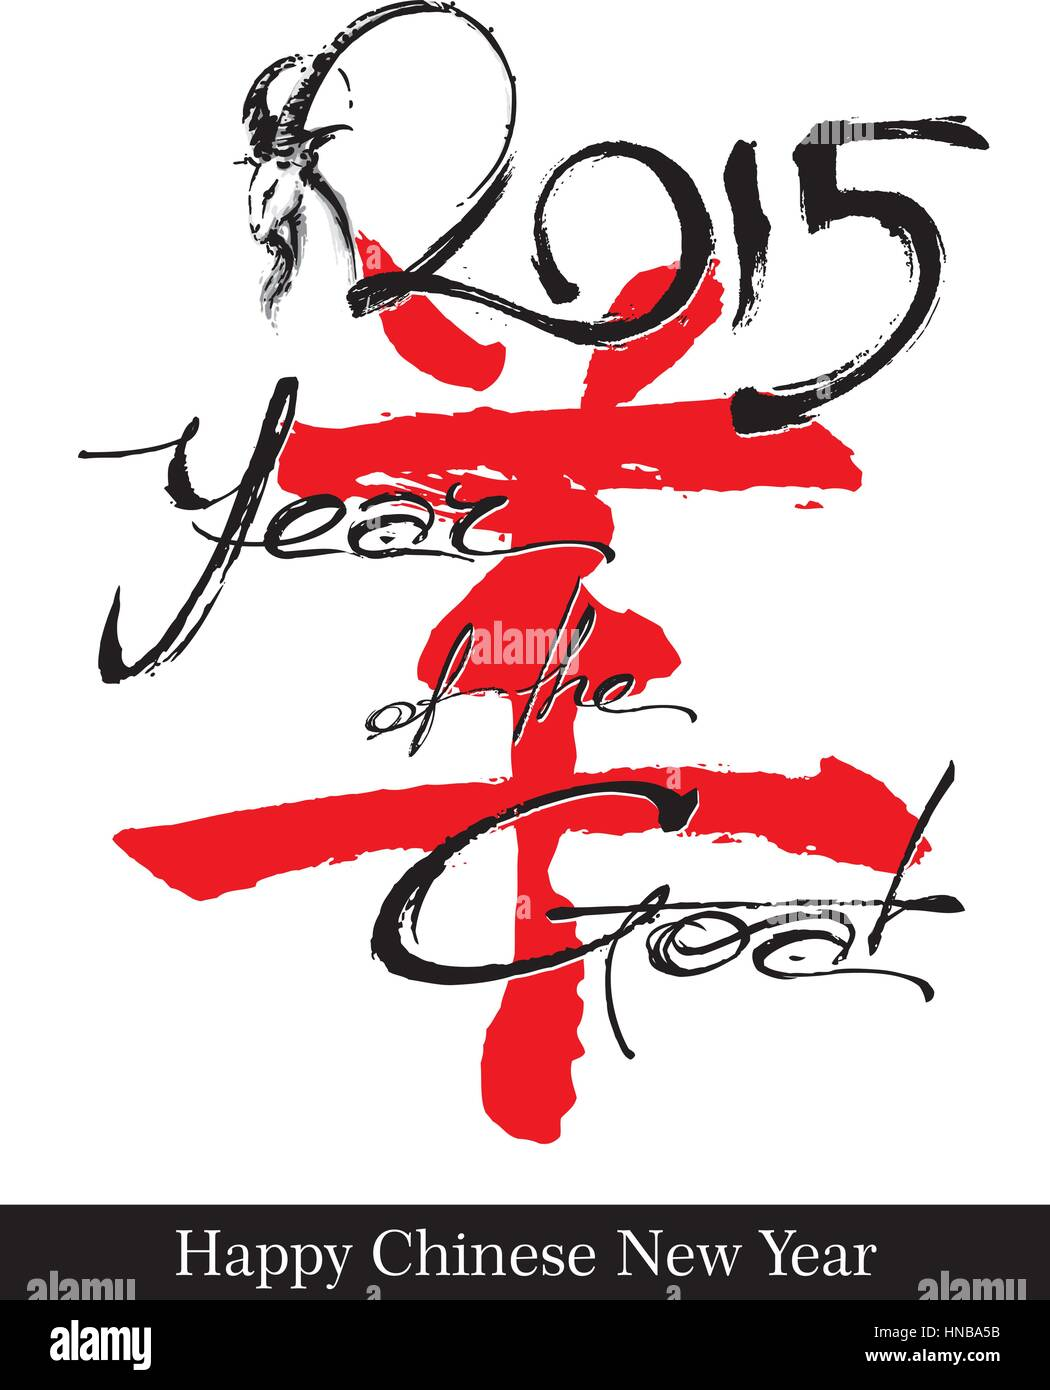 Vector illustration of a hand drawn Goat and text writing '2015 Year of the Goat ' against a calligraphically - Stock Image